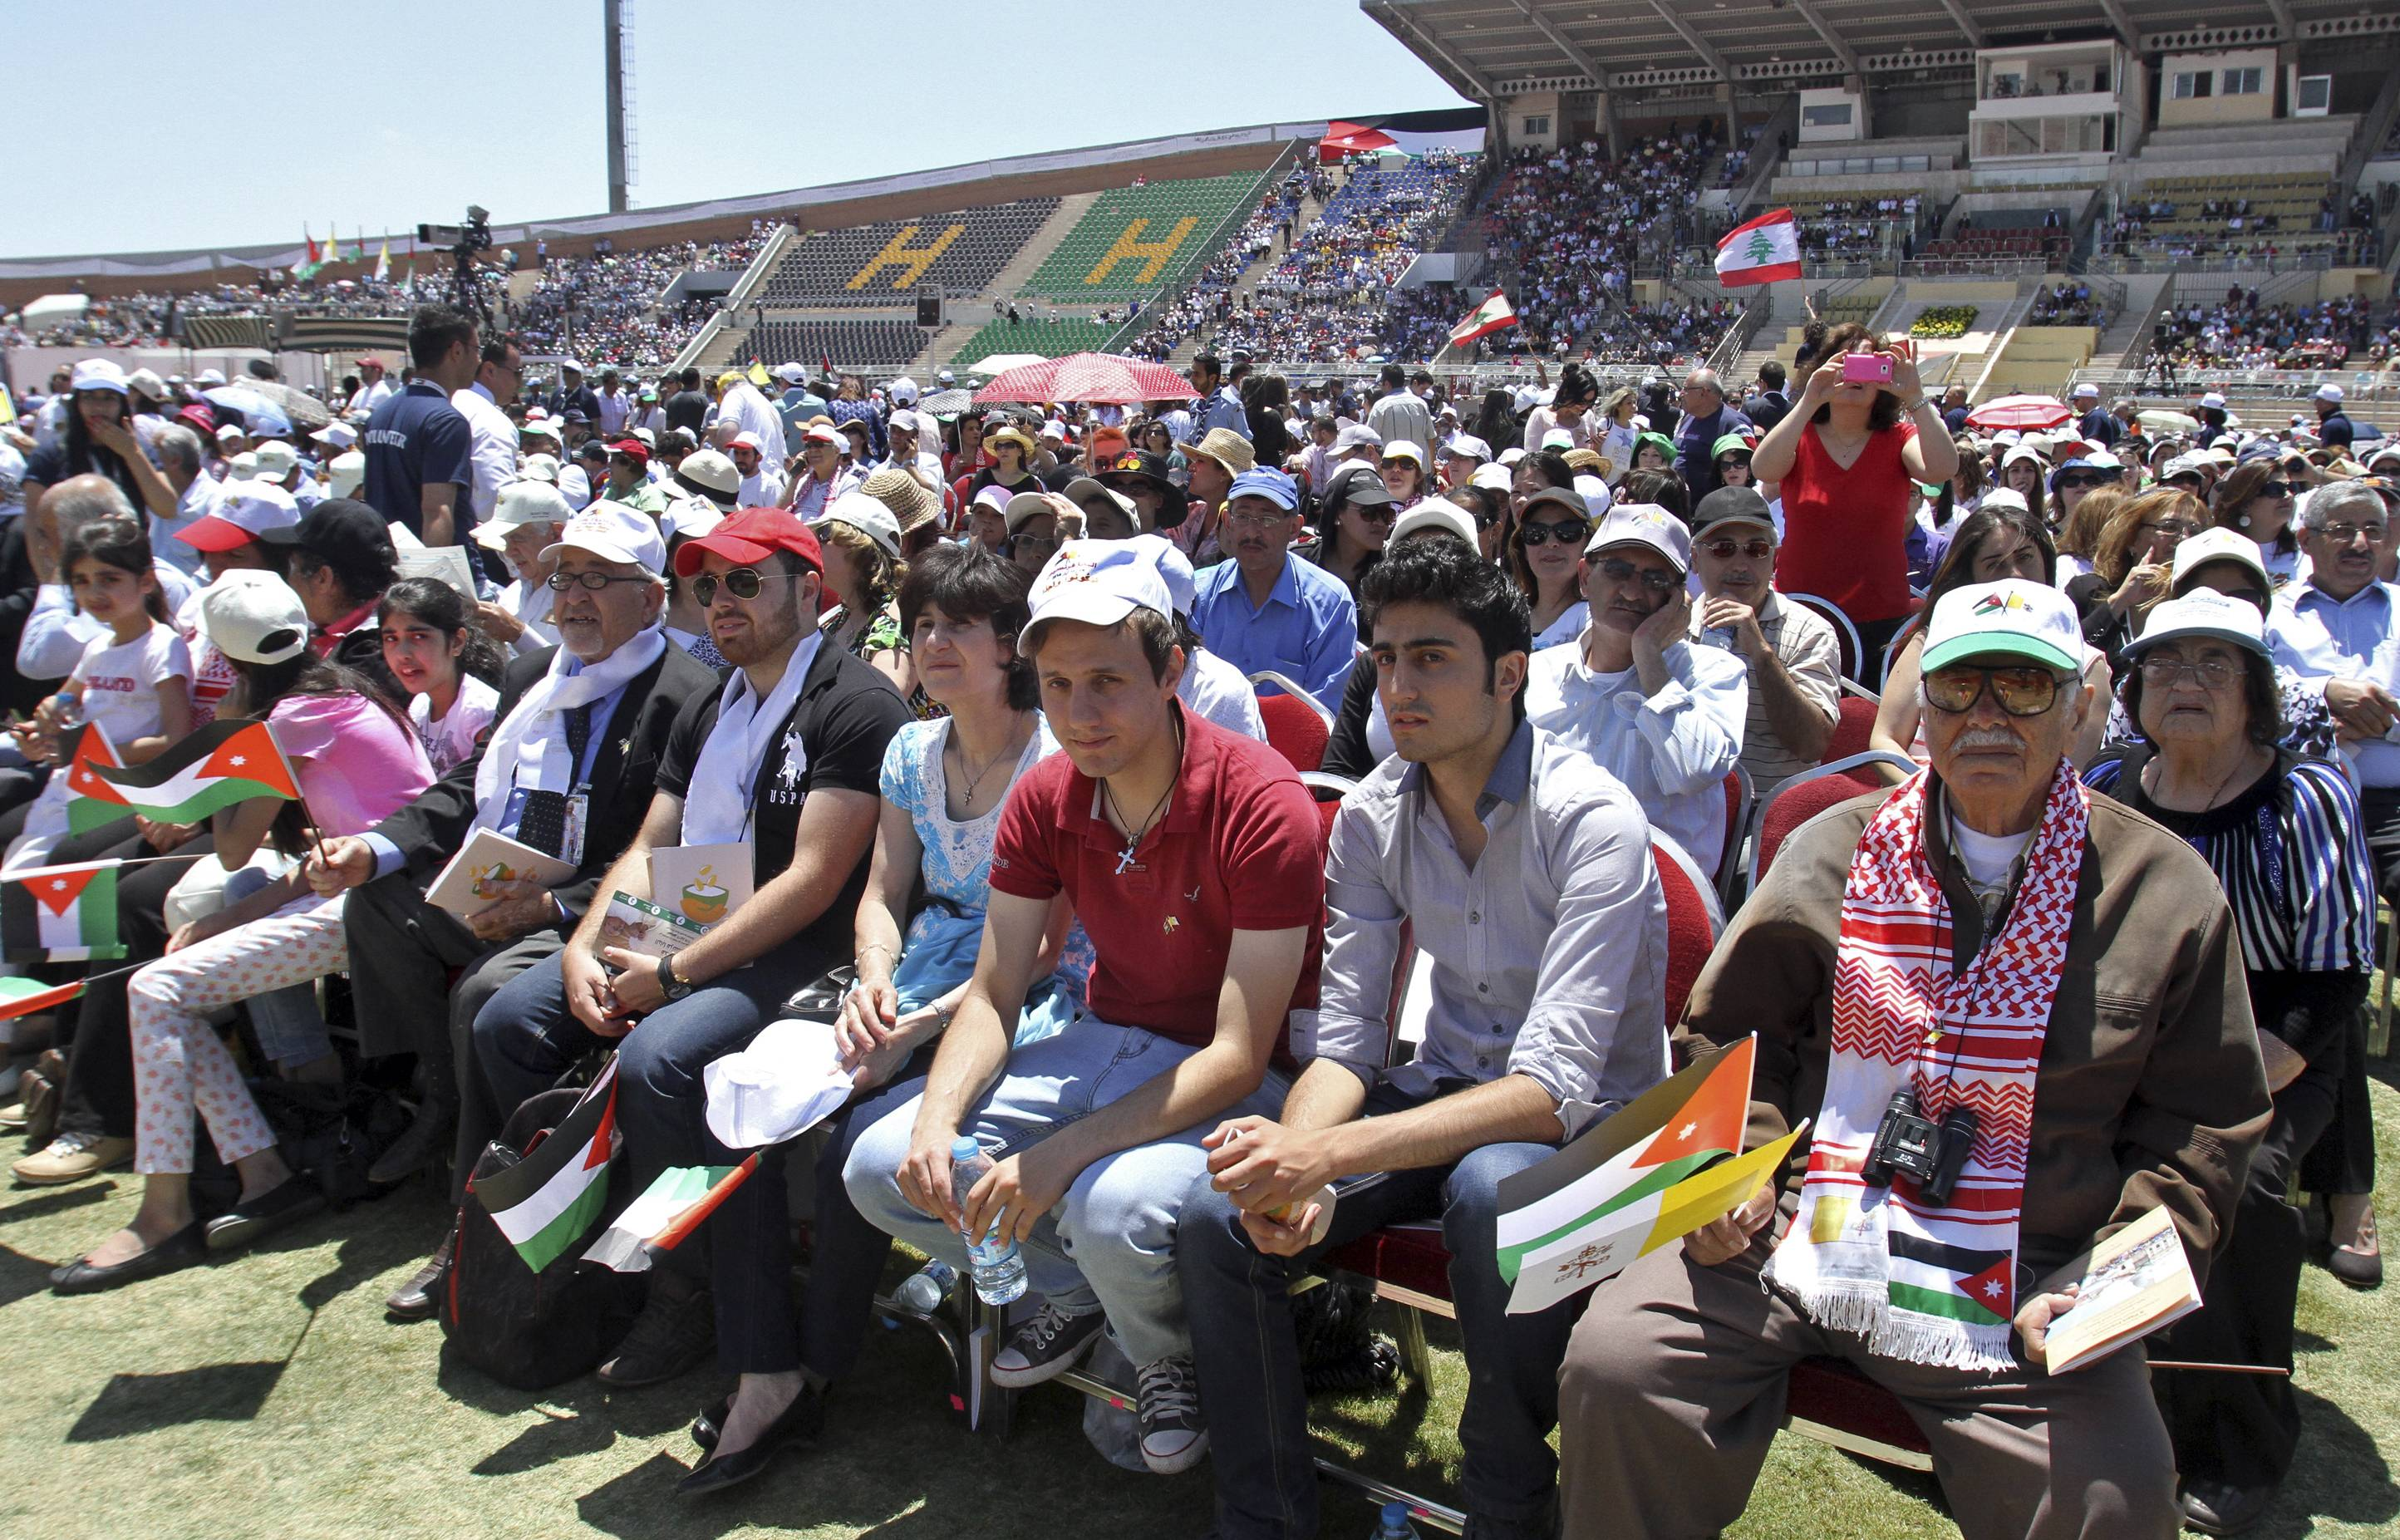 Jordanians and Christians from various nationalities and denominations hold Vatican and national flags as they congregate at Amman's International Stadium waiting for the arrival of Pope Francis where he will conduct a mass prayer, in Amman, Jordan, Saturday, May 24.